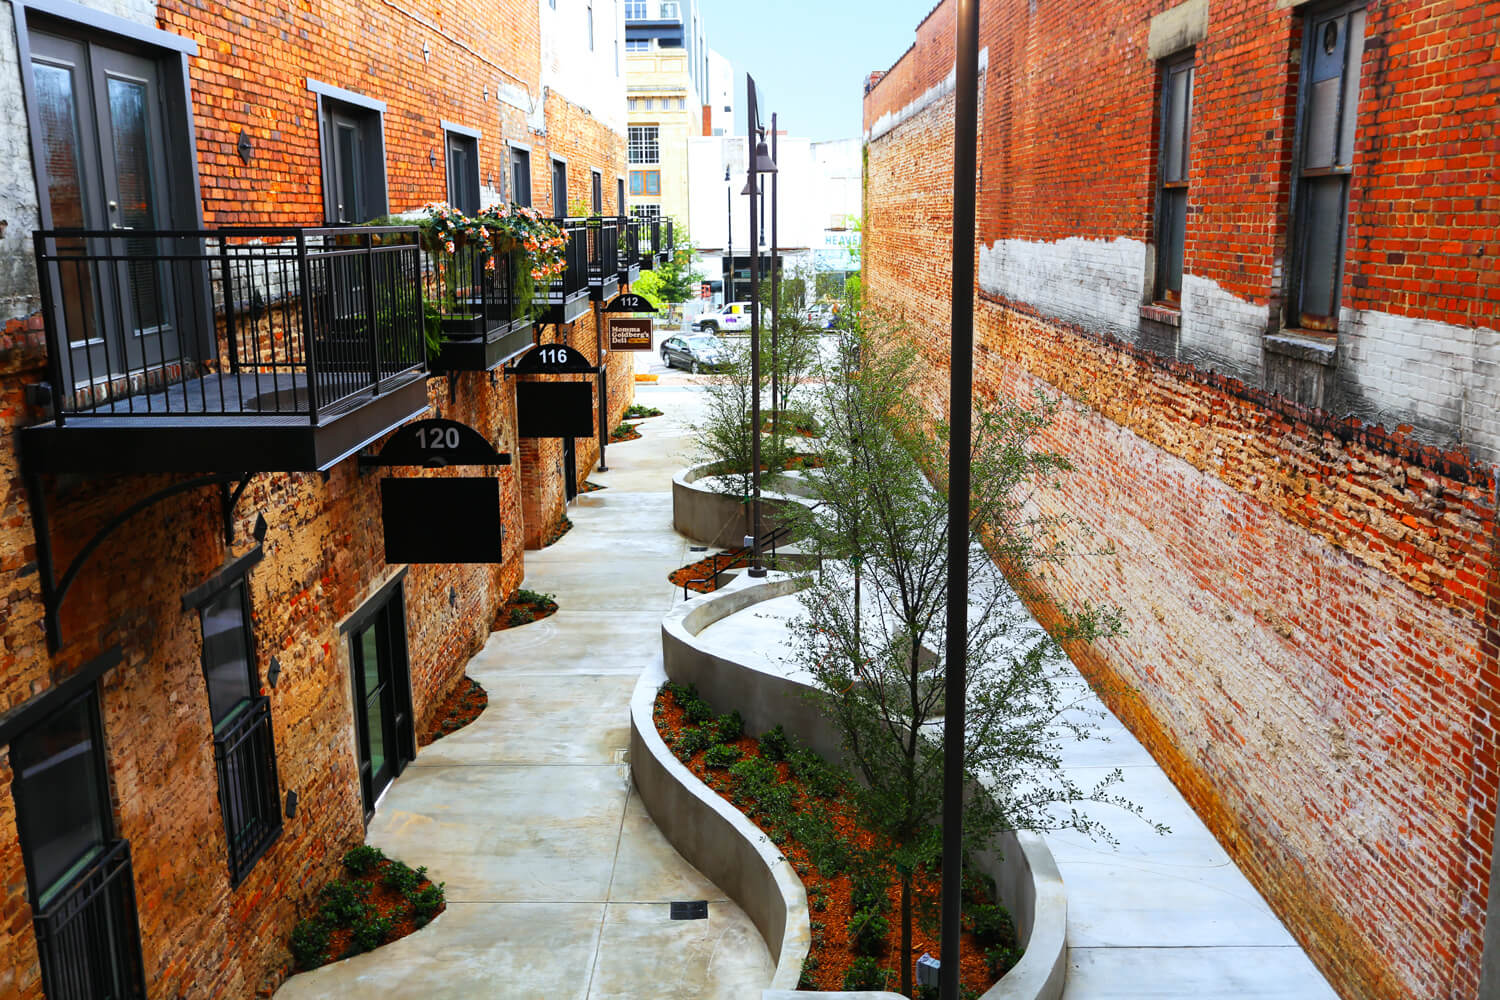 Dexter Alley Park Designed by Foshee Architecture – Aerial View Nearing Completion